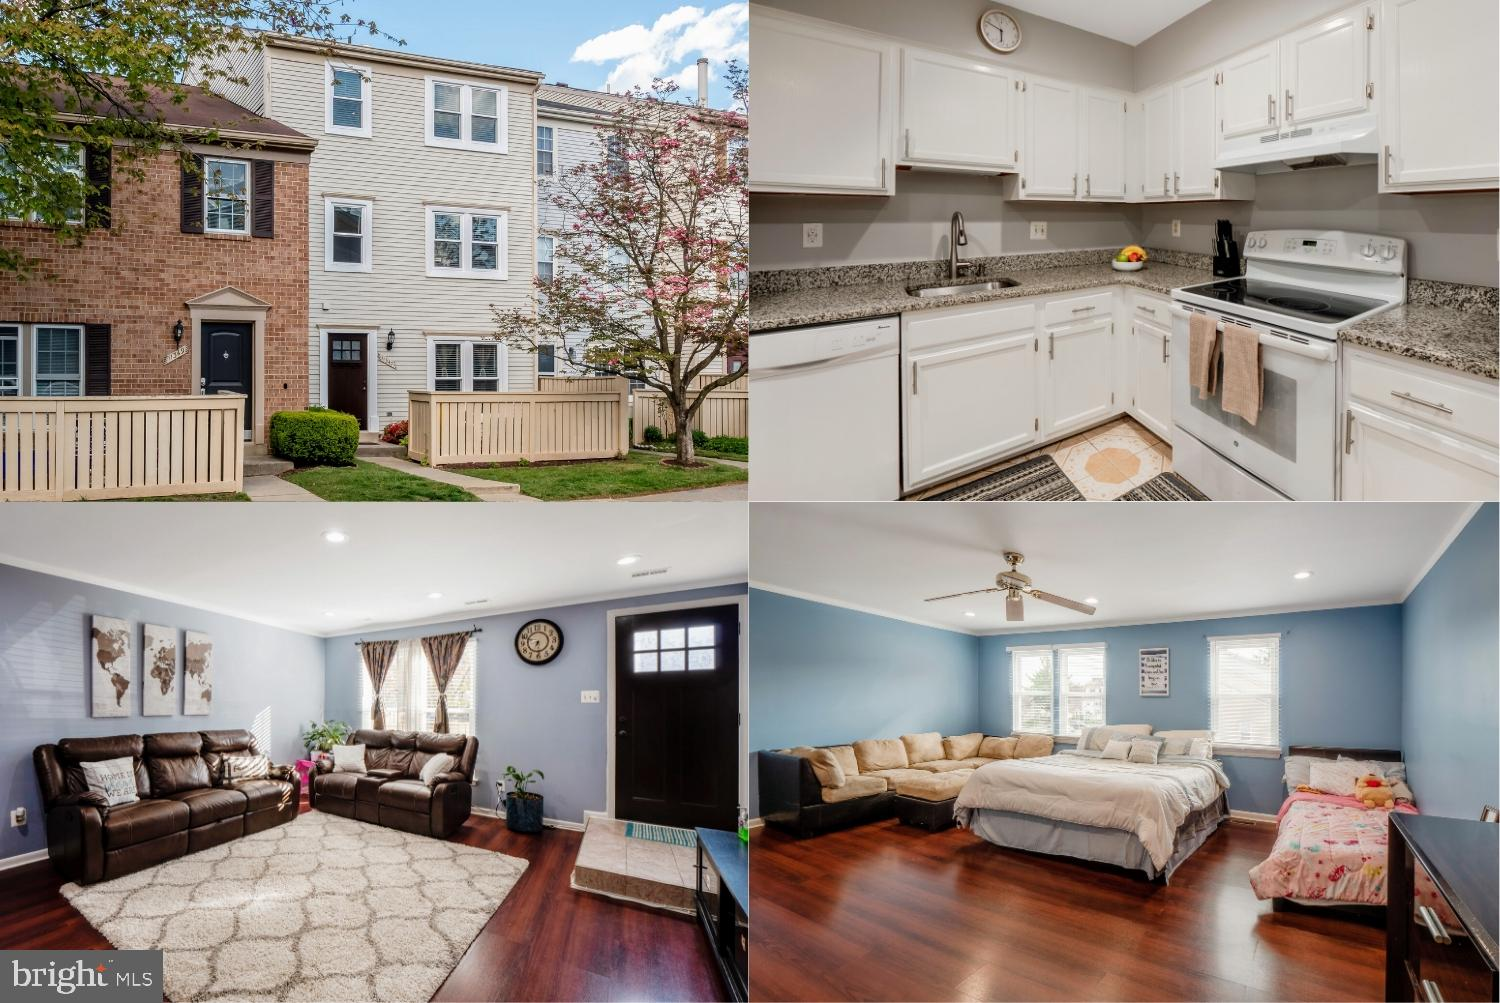 Beautiful three bedroom townhome style condo with a privacy fence surrounding front patio. Located n